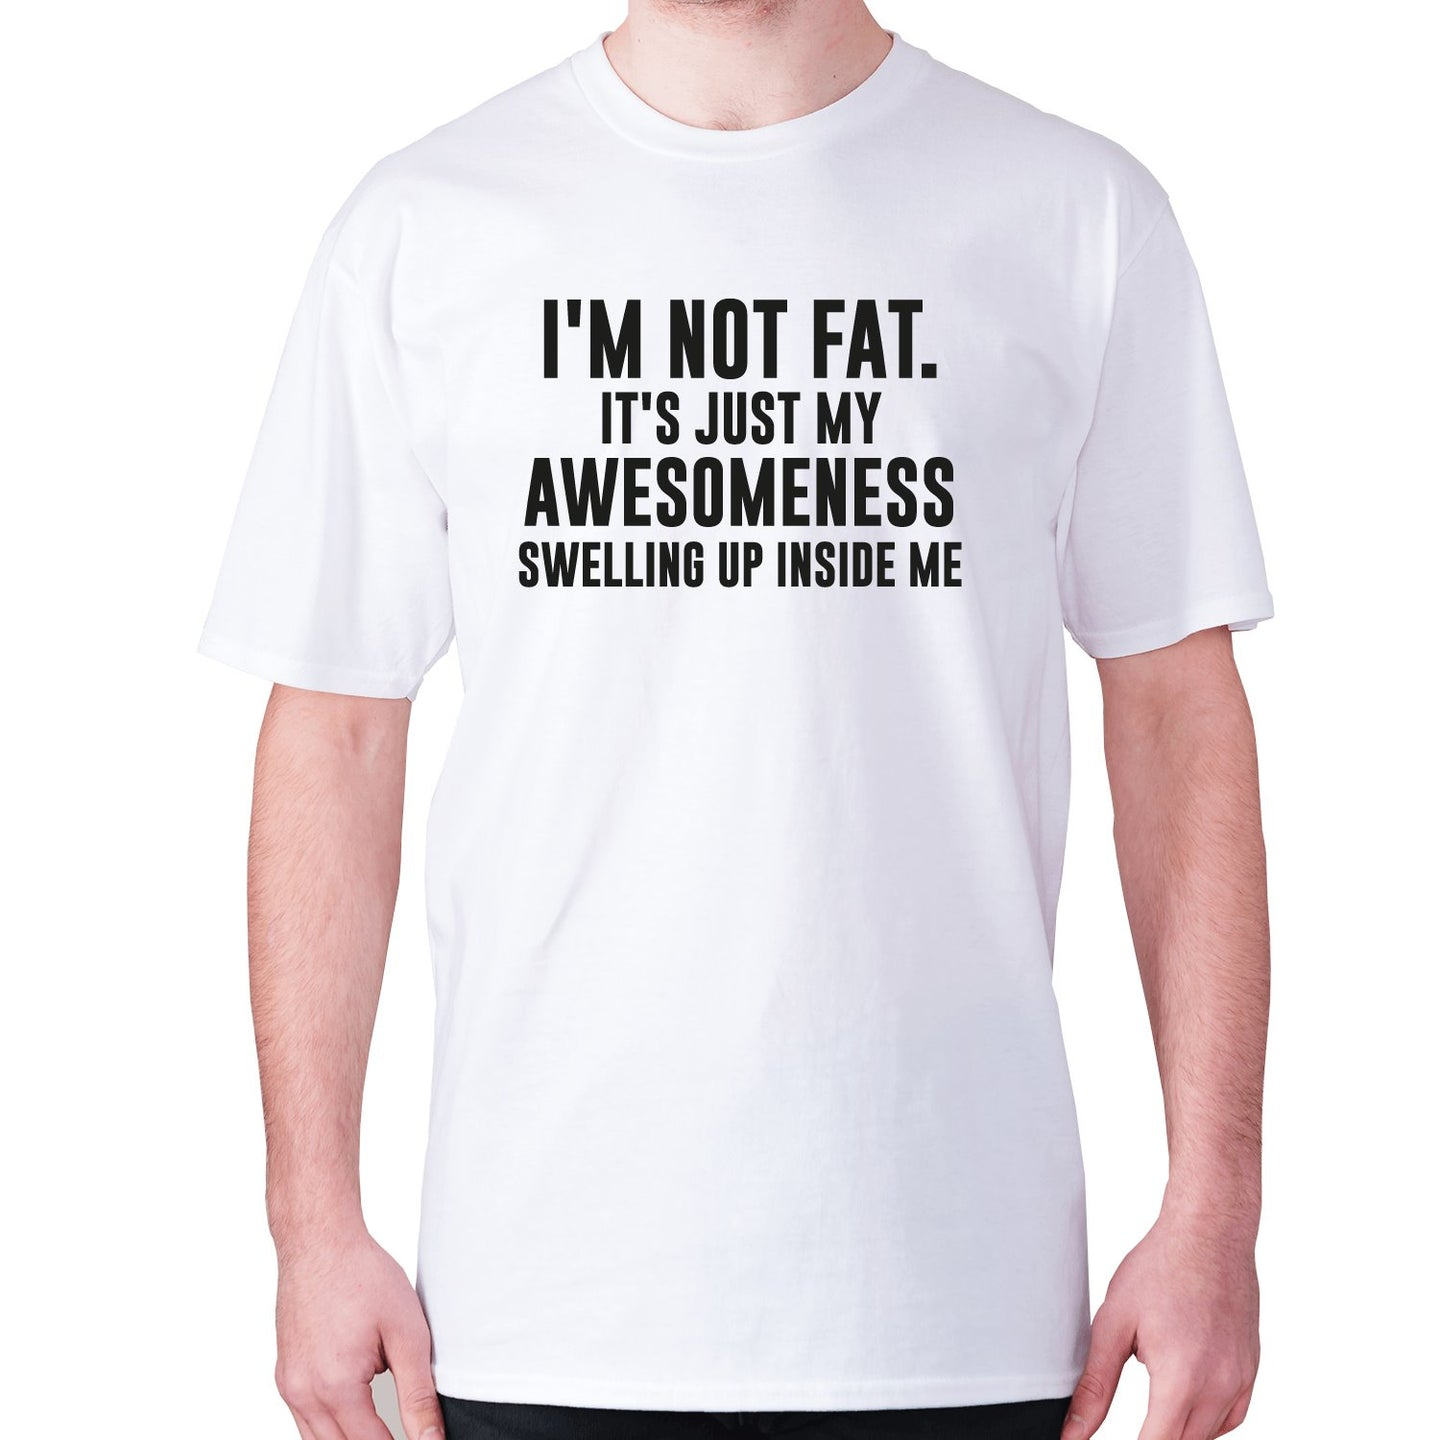 I'm not fat. It's just my awesomeness swelling up inside me - men's premium t-shirt - White / S - Graphic Gear